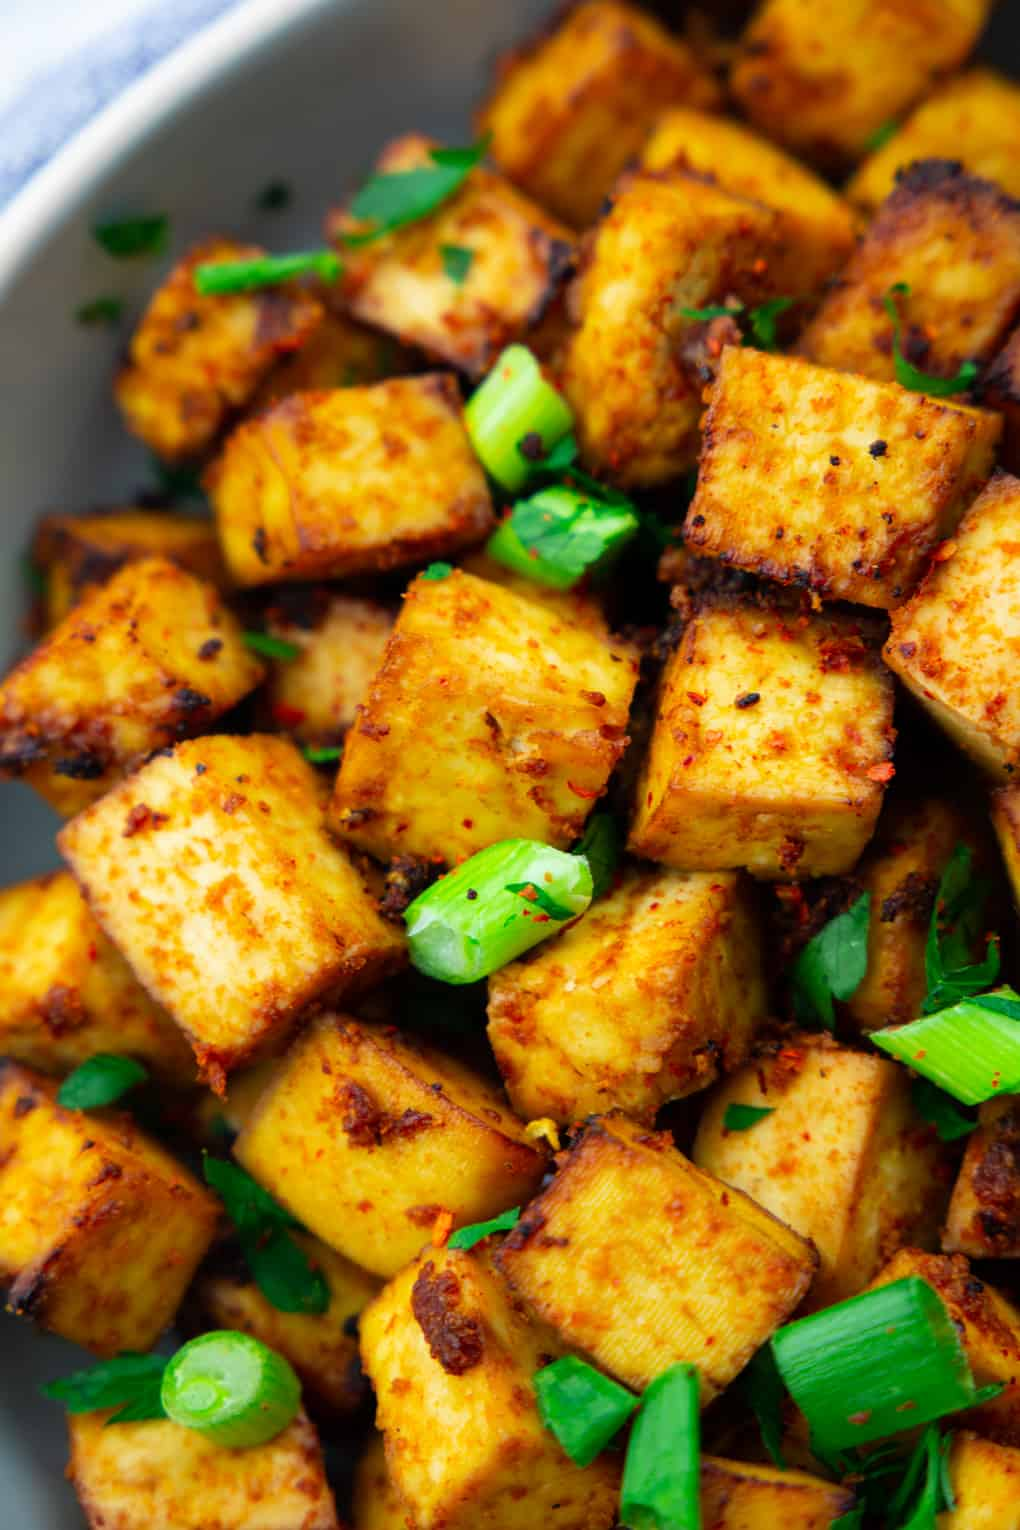 close-up photo of crispy tofu cubes with green onions sprinkled on top